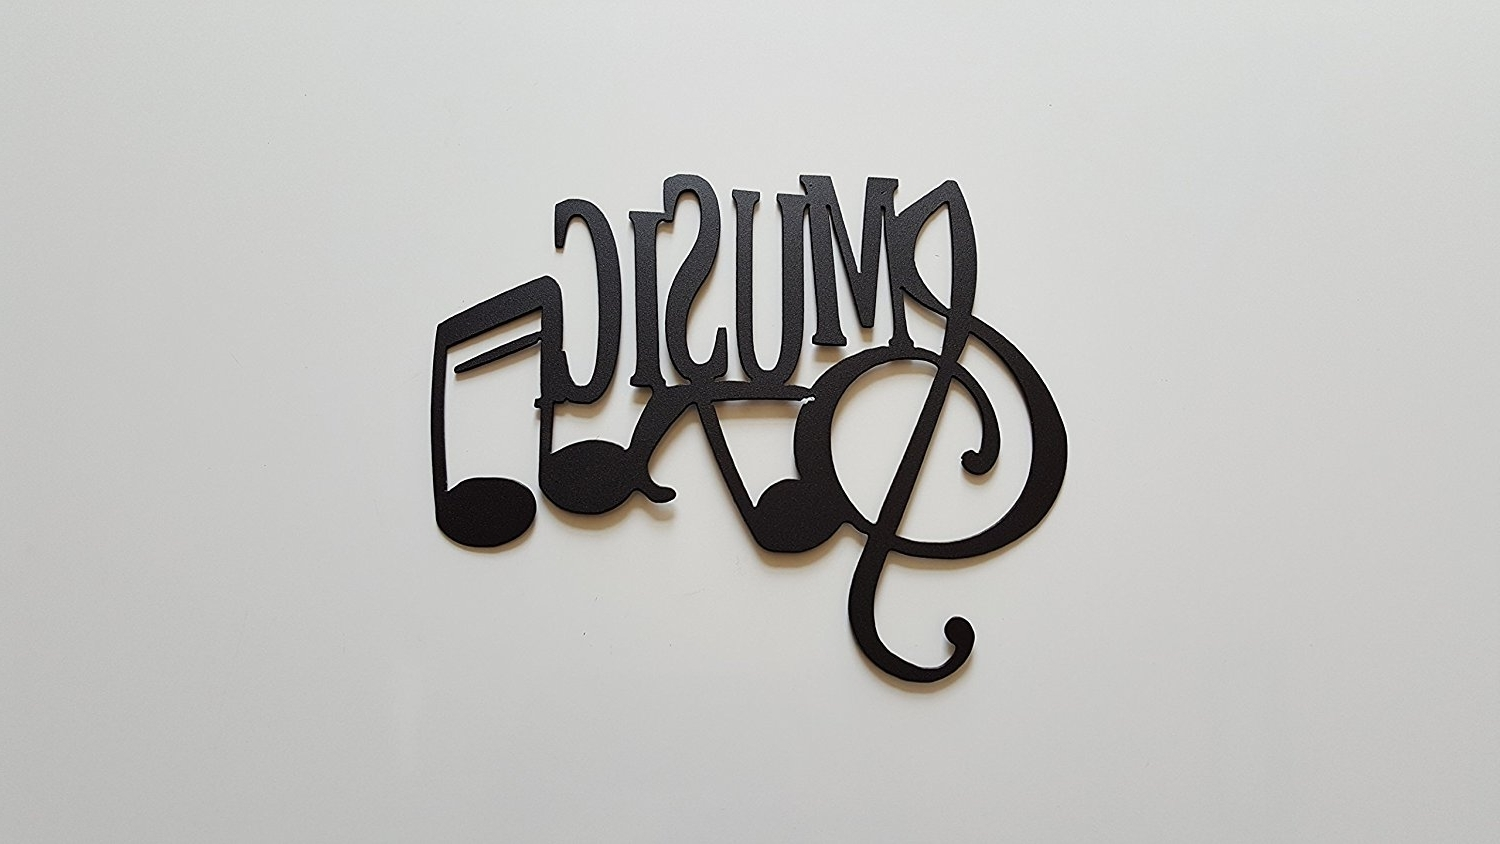 Most Recently Released Buy Music Word And Music Notes Metal Wall Art Decor In Cheap Price With Regard To Music Wall Art (View 6 of 15)